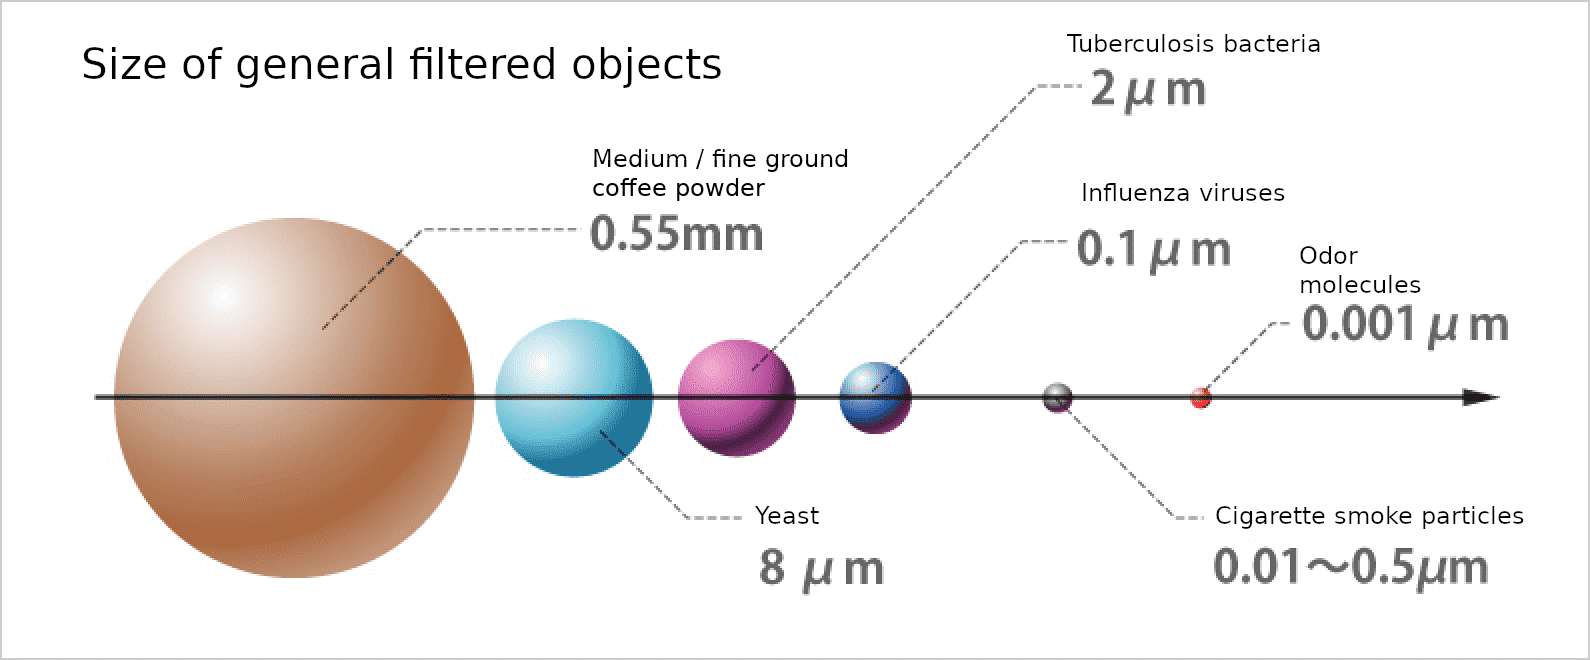 Size of general filtered objects